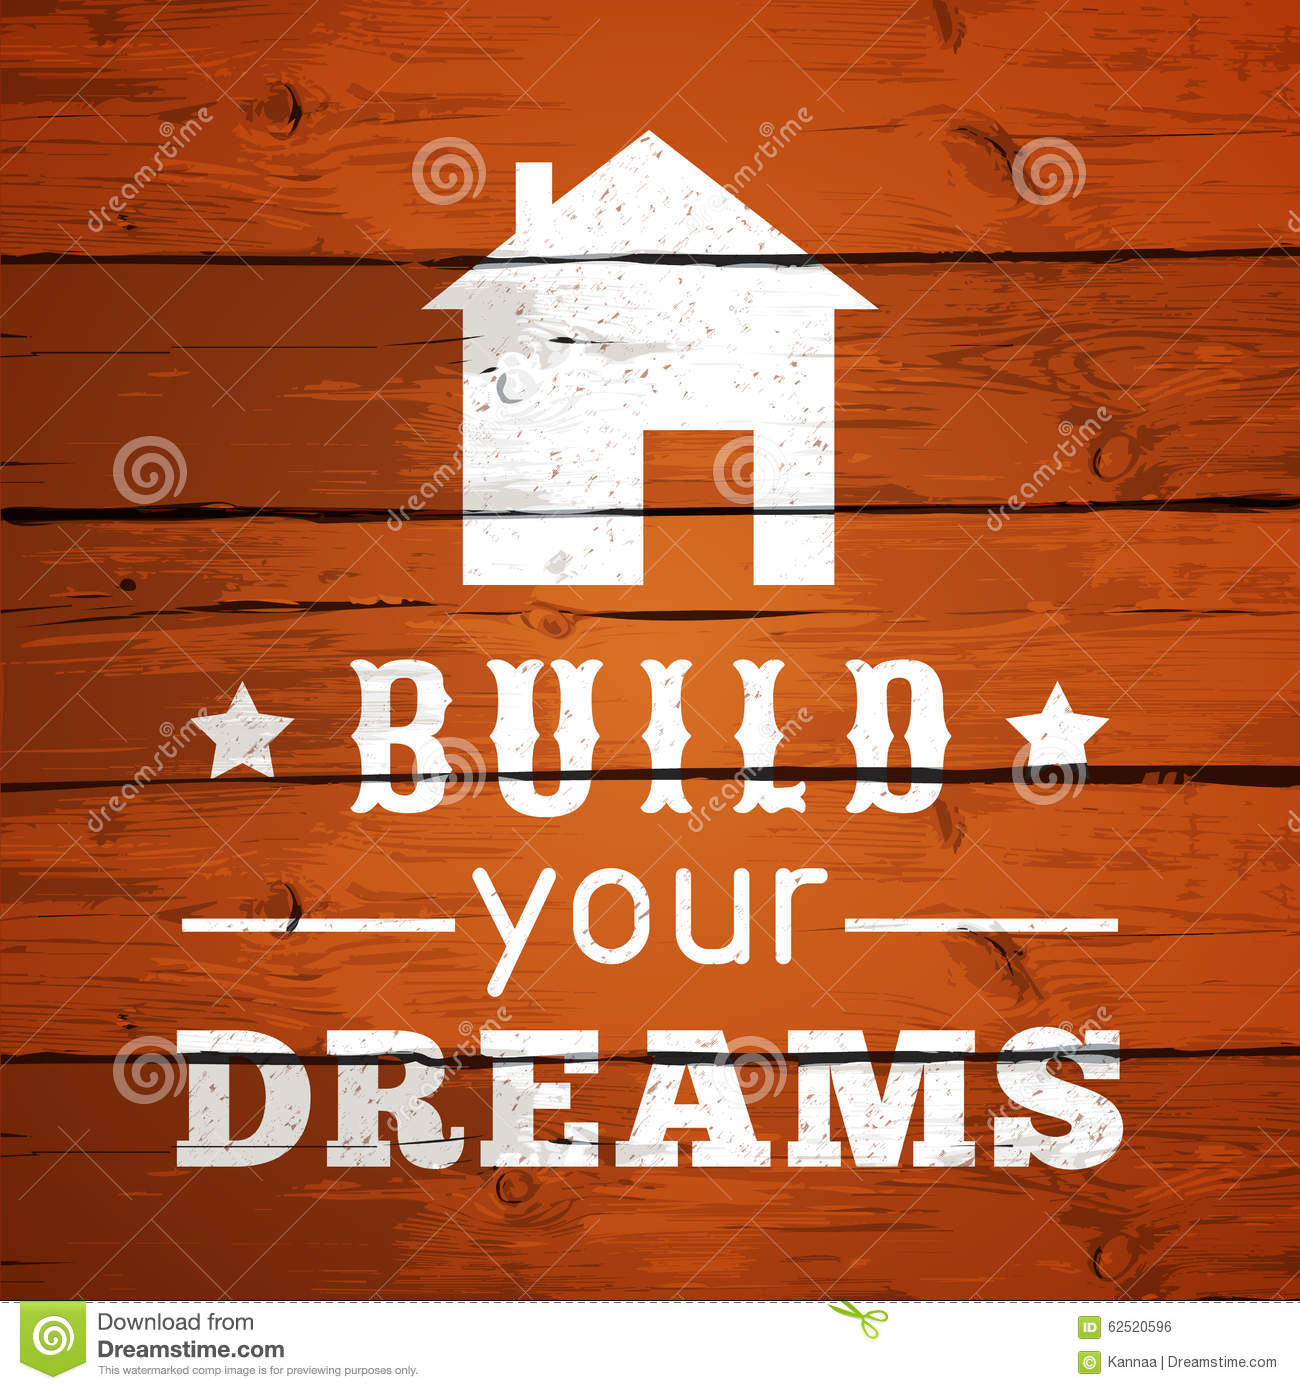 Typographic Poster Design Build Your Dreams Stock Illustration Image 62520596